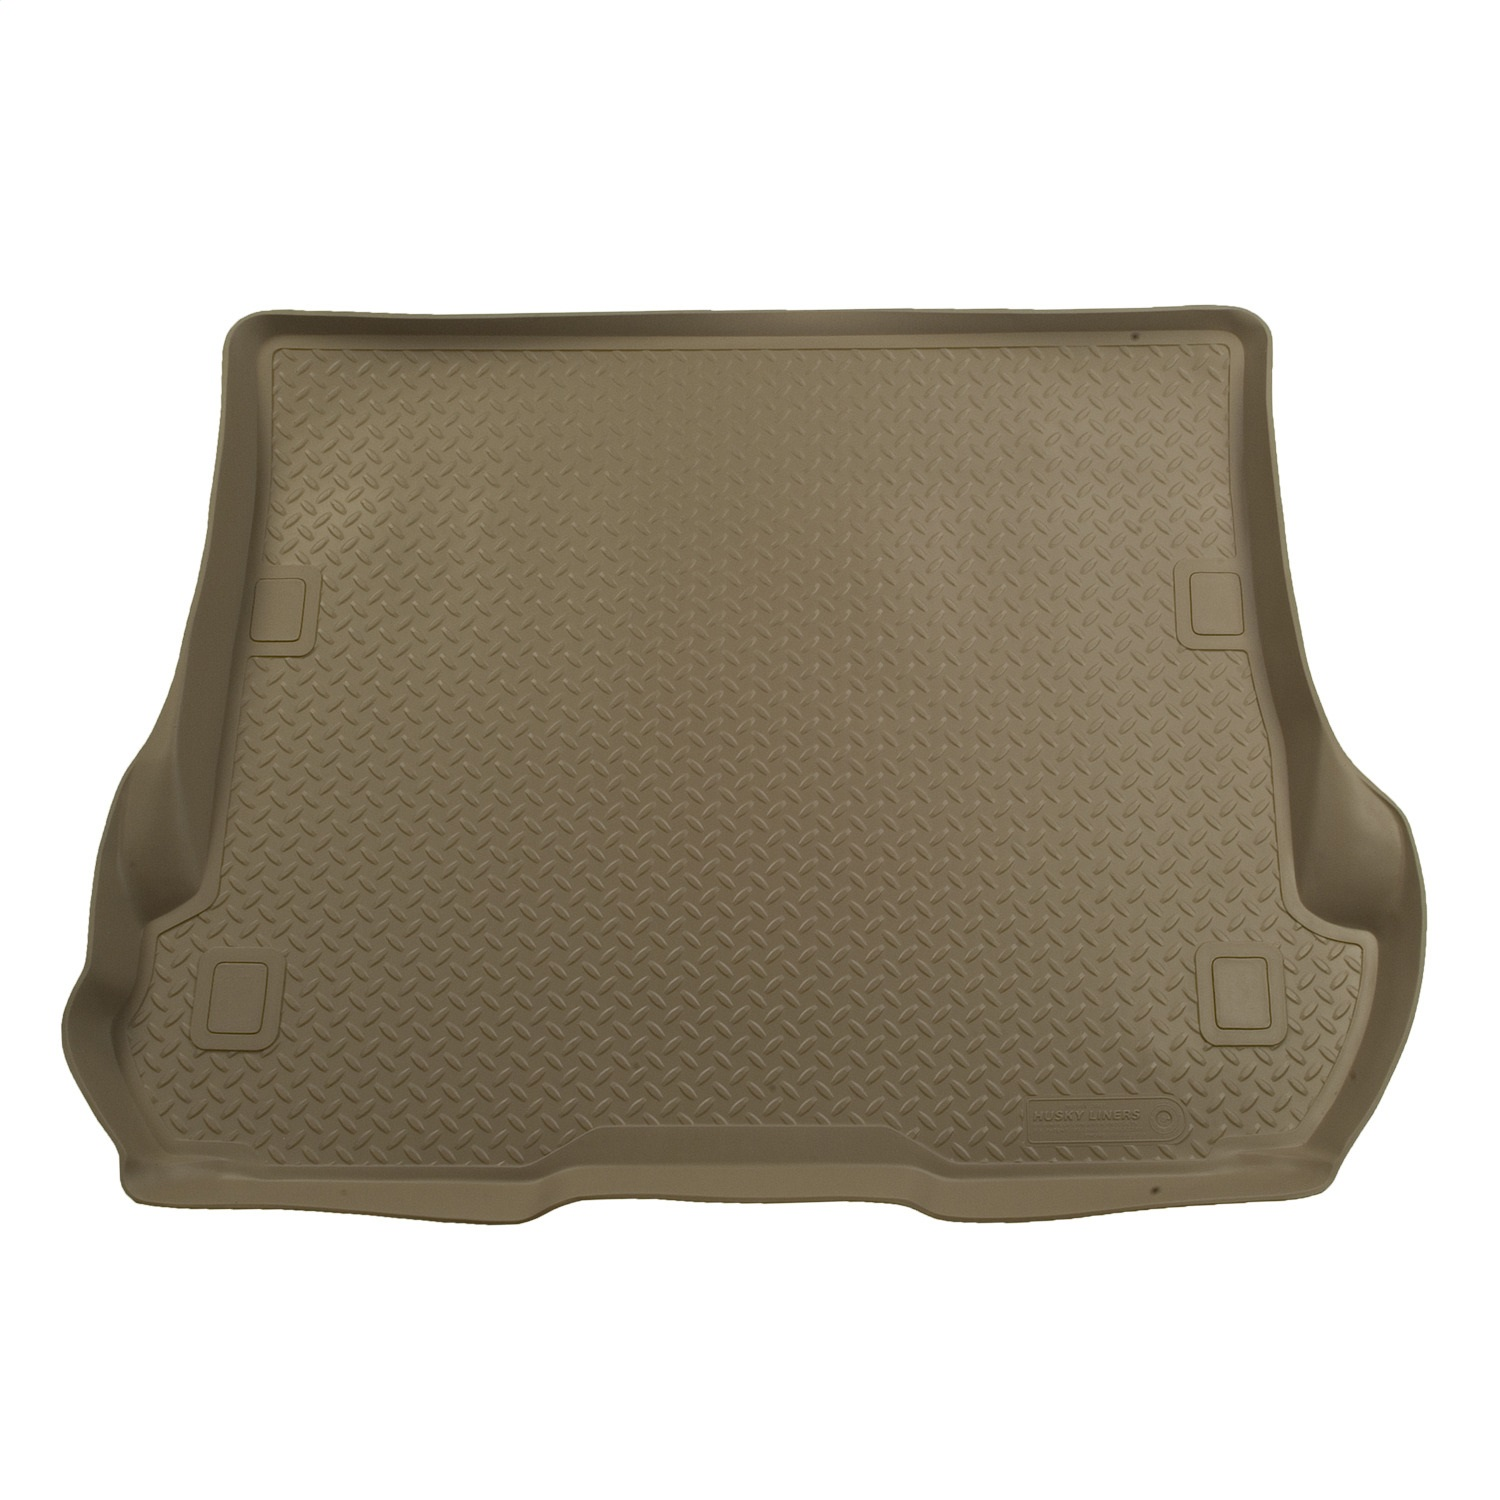 Husky Liners 25553 Classic Style Cargo Liner Fits 01-07 Sequoia